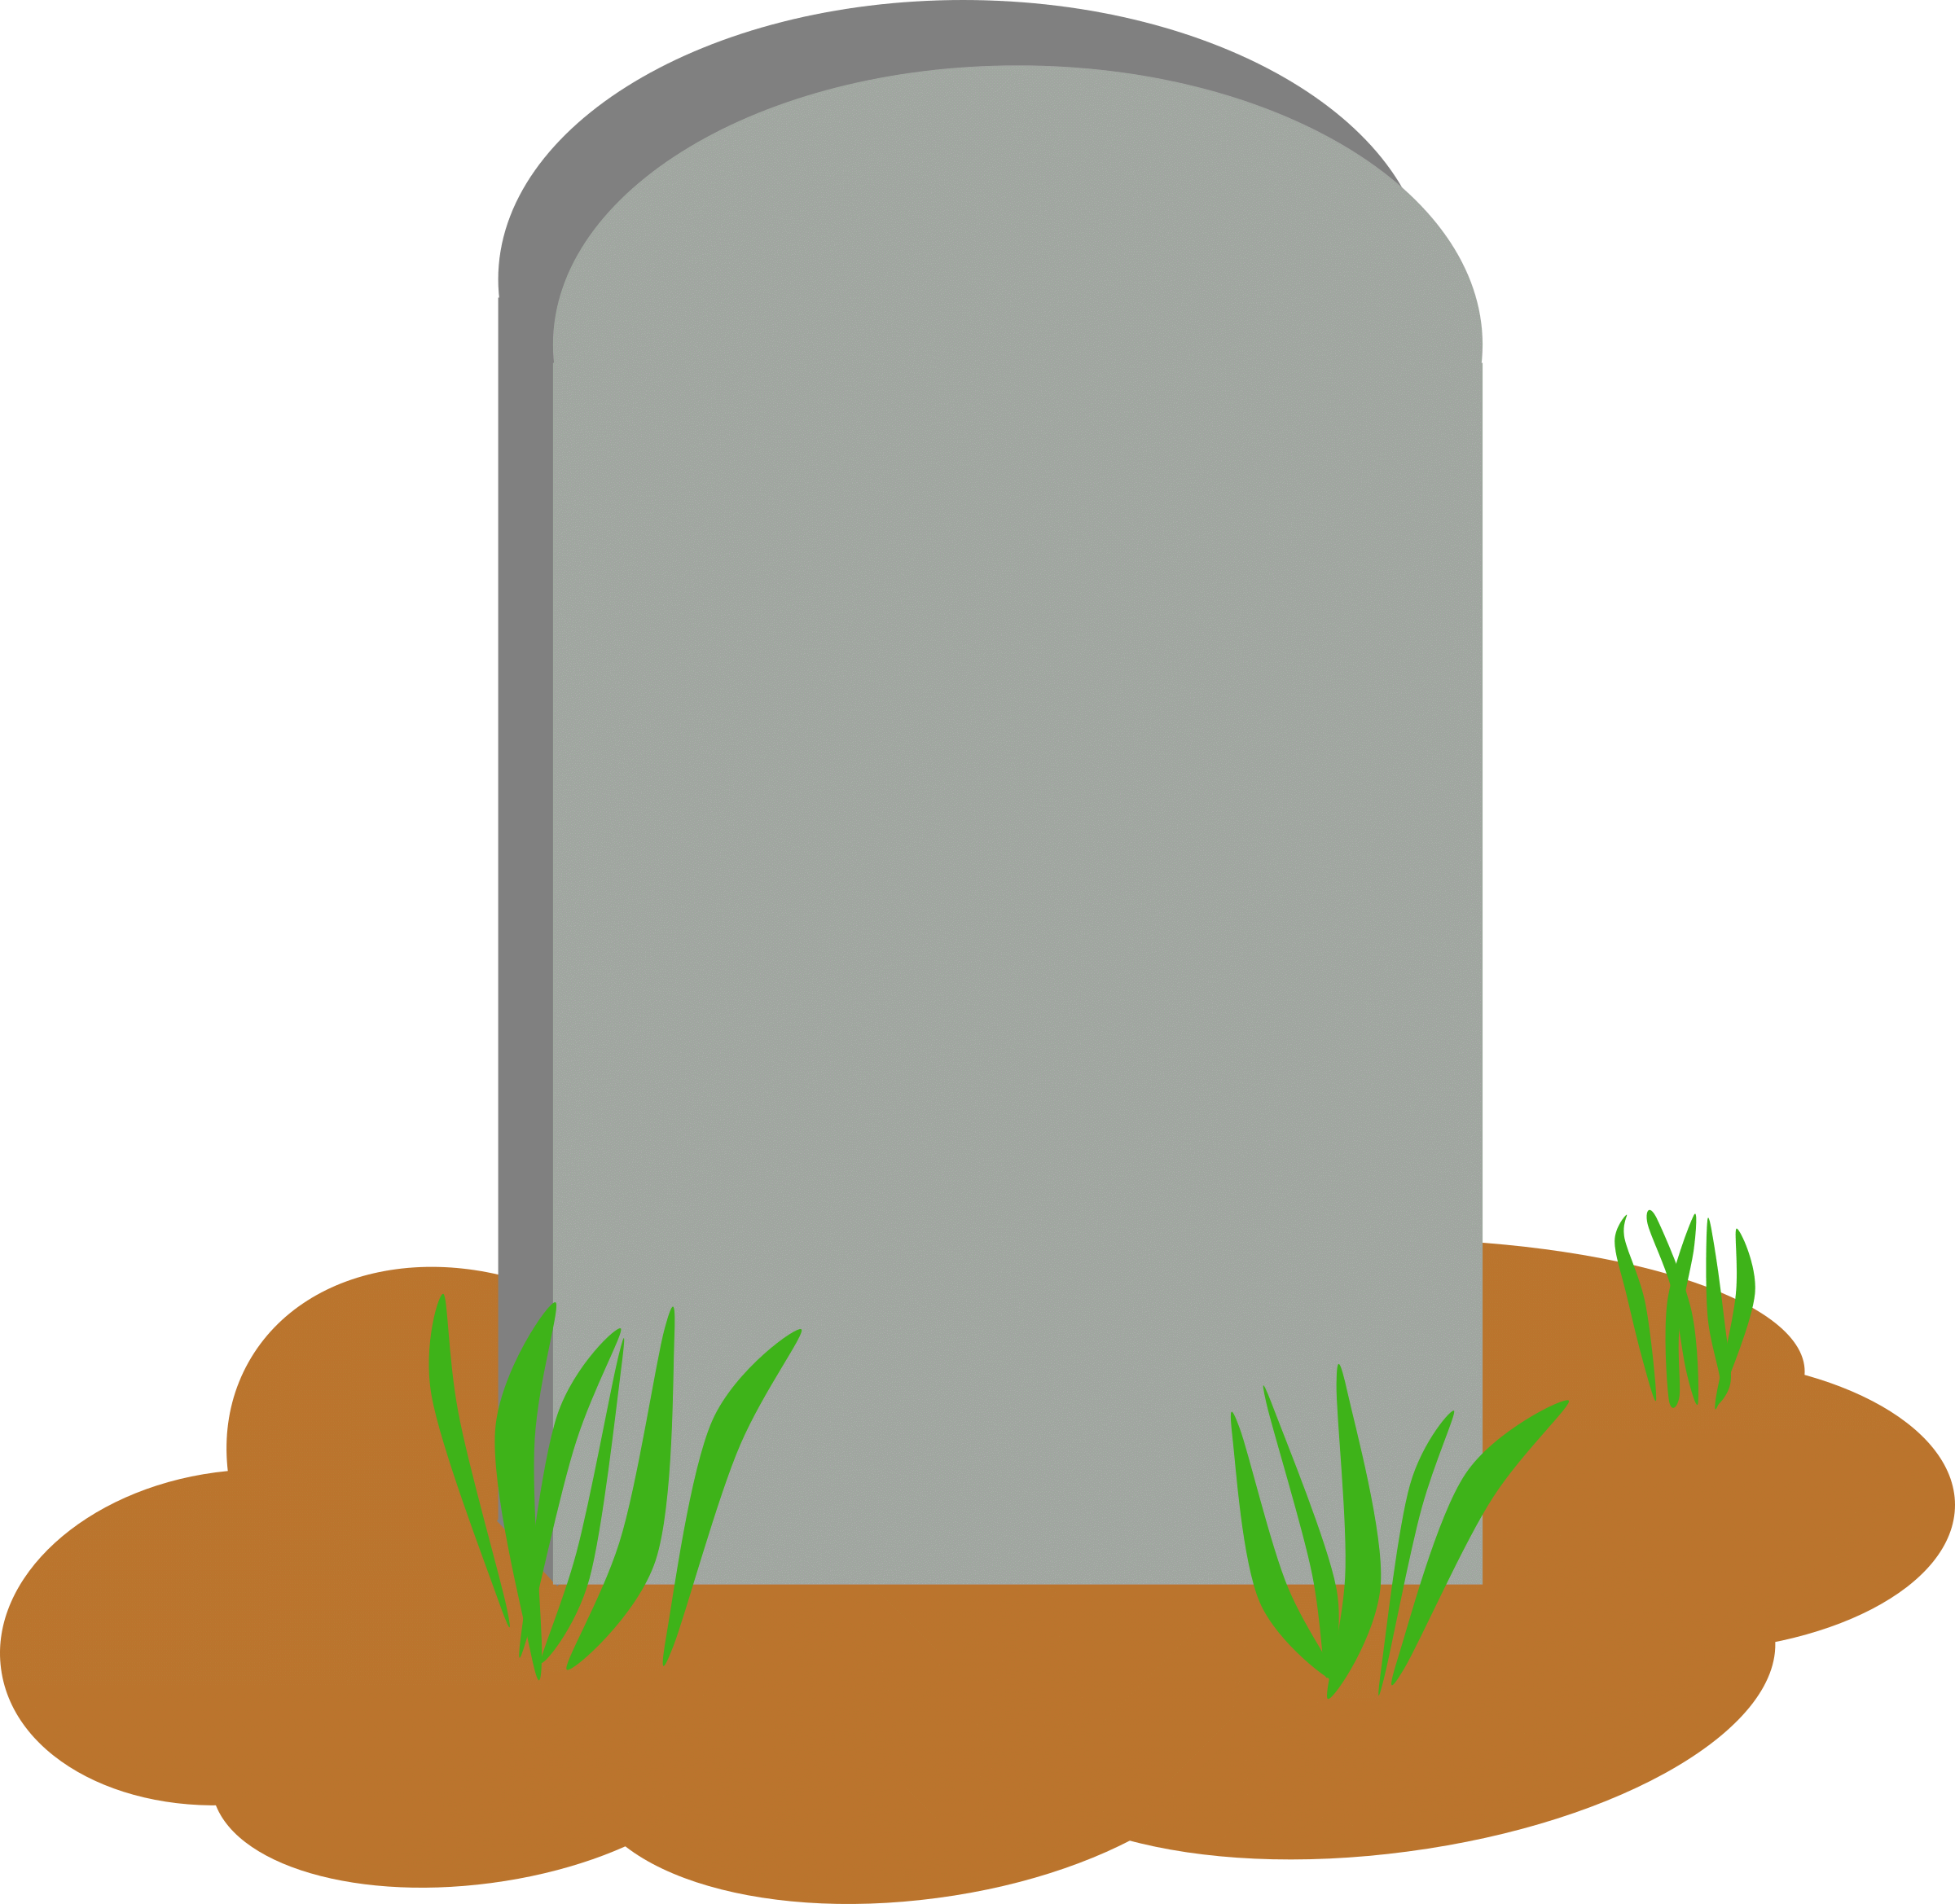 clipart transparent stock Graveyard death free on. Headstone clipart.